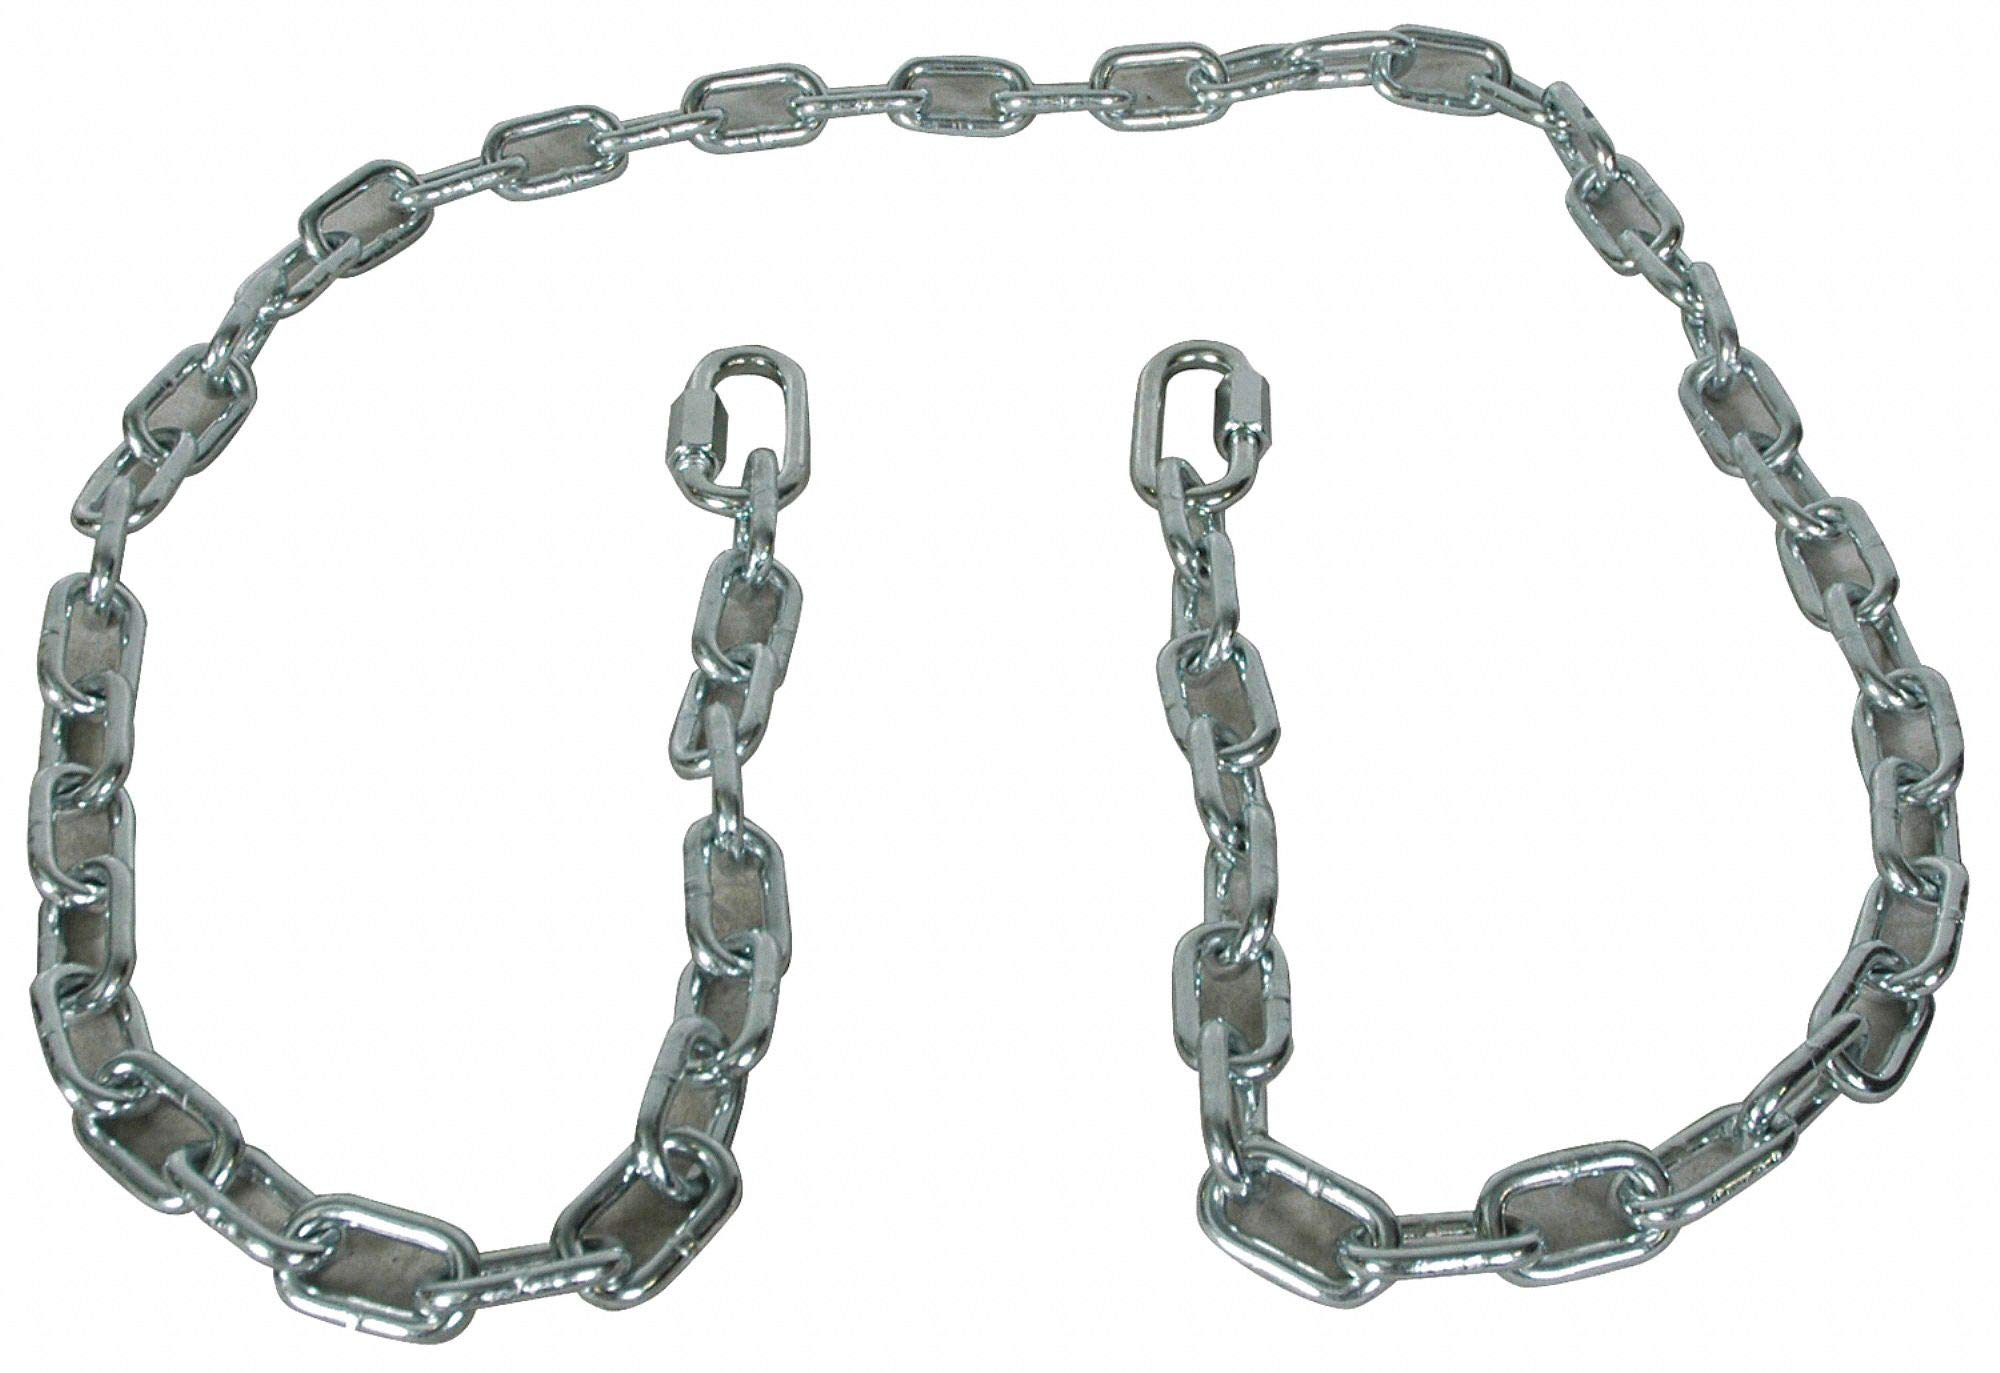 Cequent Consumer Products Reese Safety Chain, 72in, Steel, Silver 72'' Silver Steel 7007800